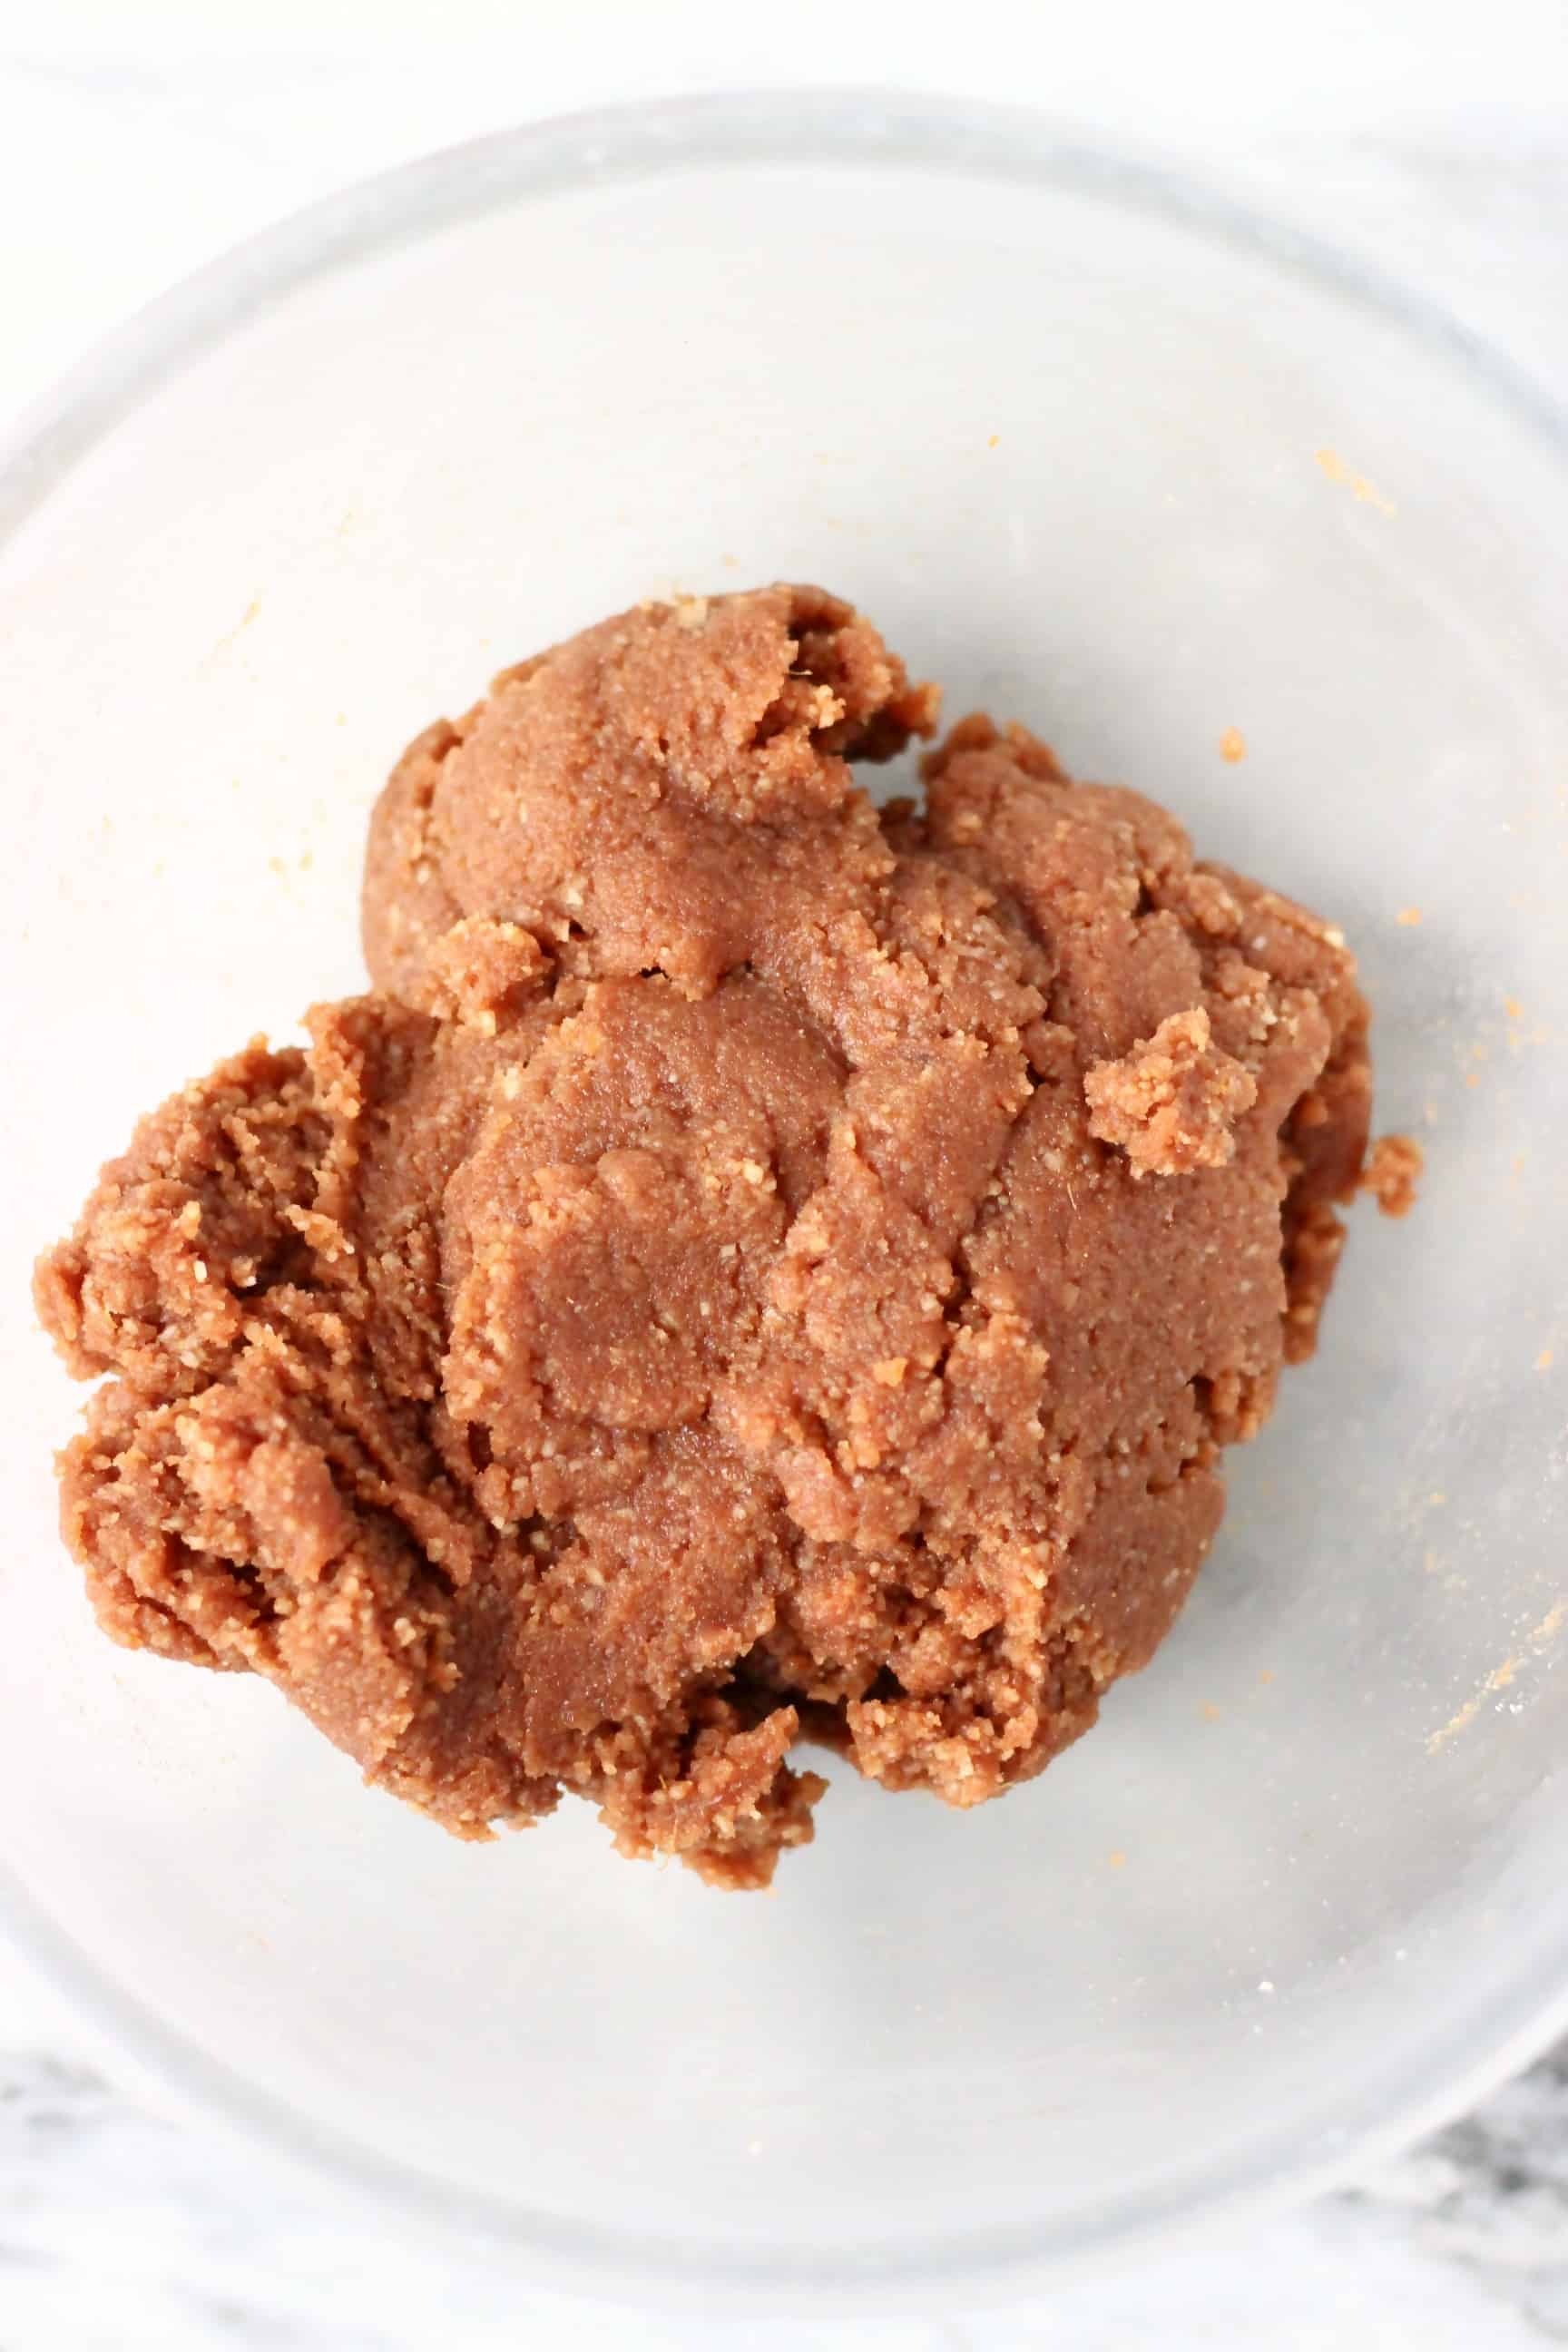 Raw gluten-free vegan gingerbread cookie dough in a glass mixing bowl